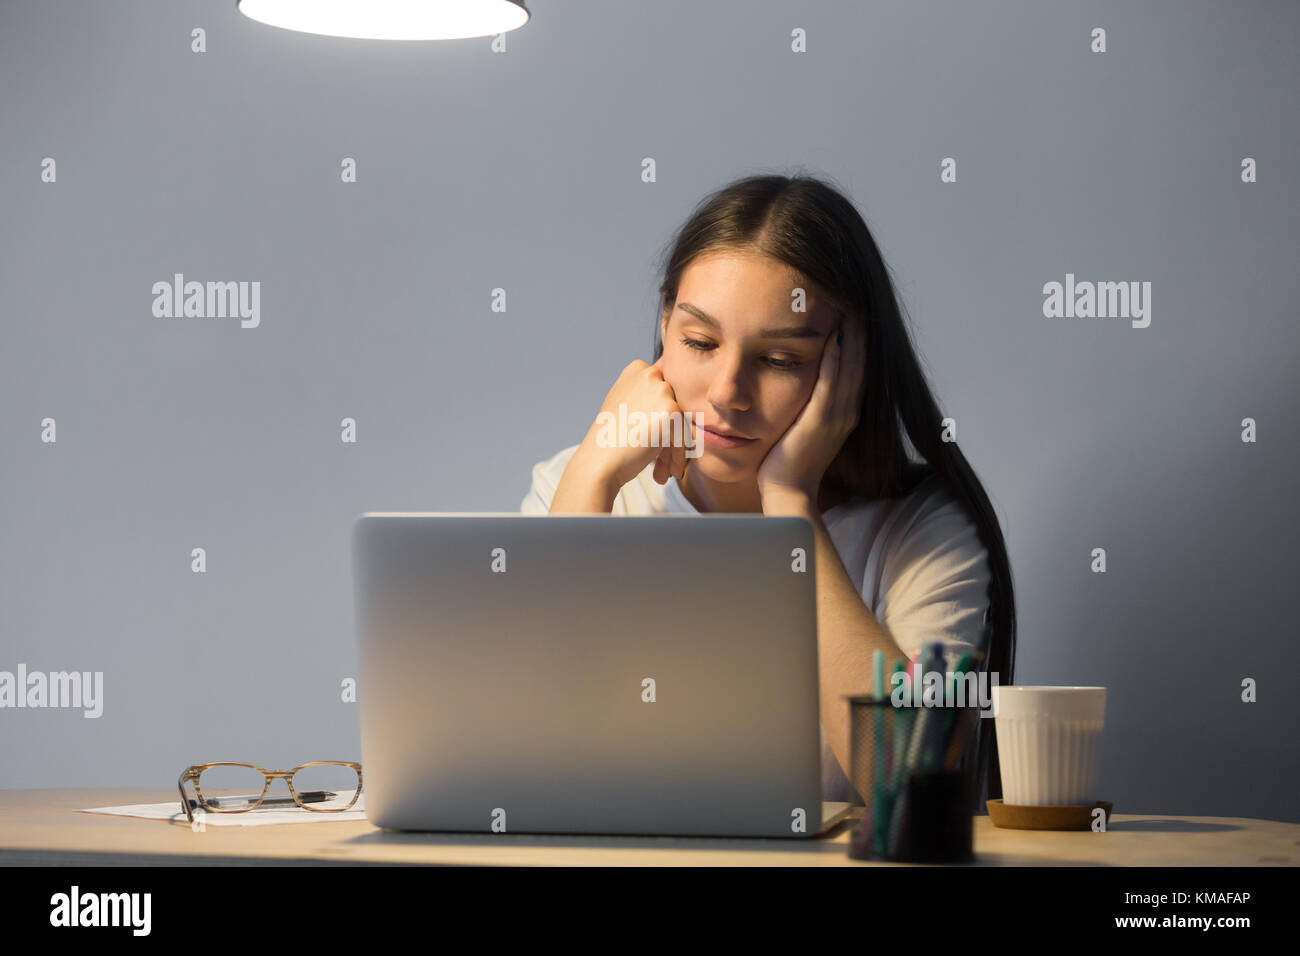 Tired businesswoman dozing leaning her head on hand on desk. Sleepy female manager suffering from lack of sleep. - Stock Image